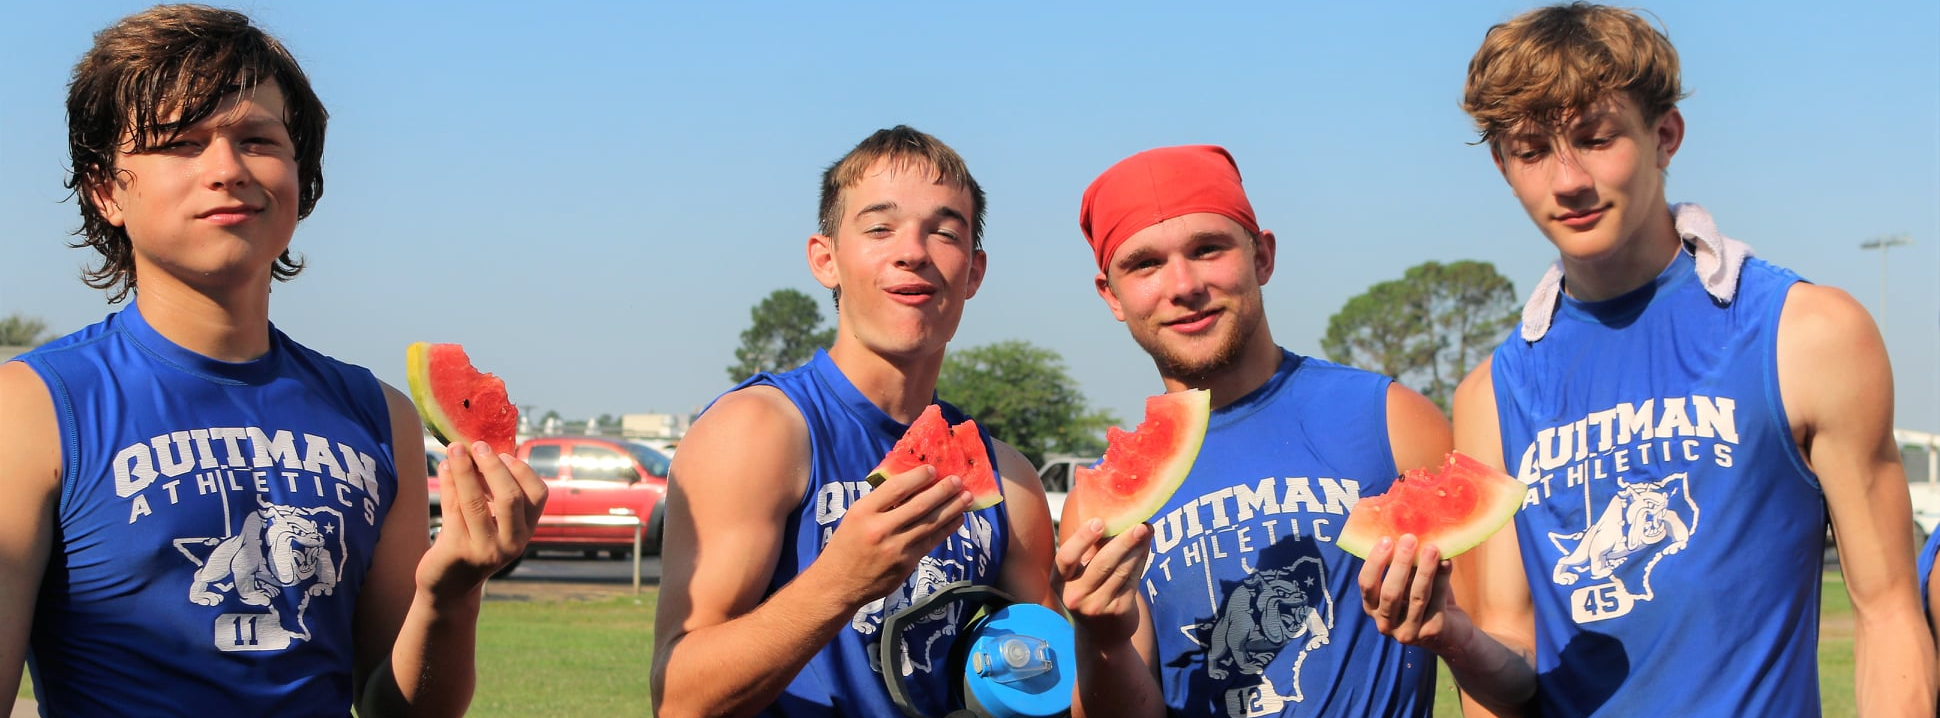 Football players eating watermelon after workout